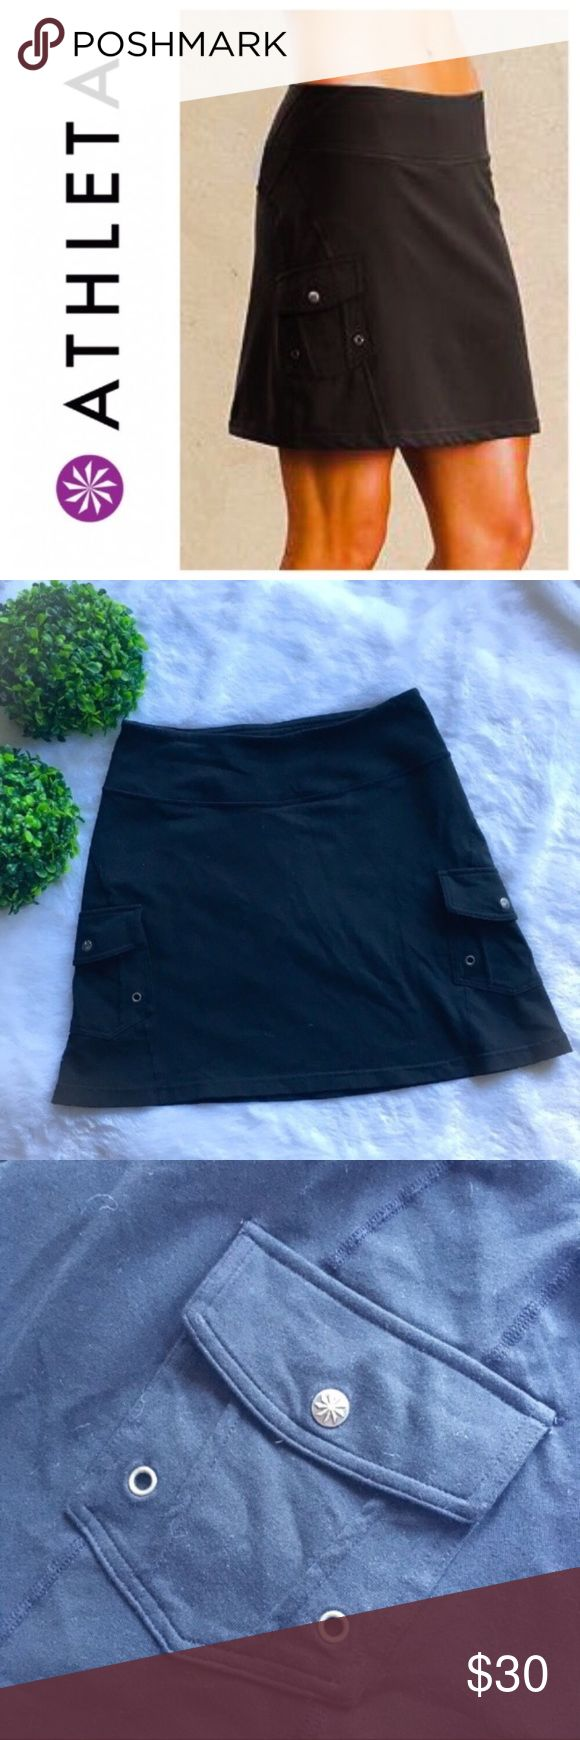 "Athleta Black Oasis Cargo Skort Athleta black Oasis cargo skort in excellent preloved condition. Size XS, 26"" waist, and 15"" long. Features 2 side buttoned cargo pockets, front inside hidden pocket on the waistband, airy mesh shorts underneath, and a hidden pocket on the inside shorts. The shell is 88% supplex nylon/12% lycra and the lining is 93% polyester/7% spandex. Machine wash cold and tumble dry on low heat. I'm only looking to sell at this time so sorry but no trades. My listing price…"